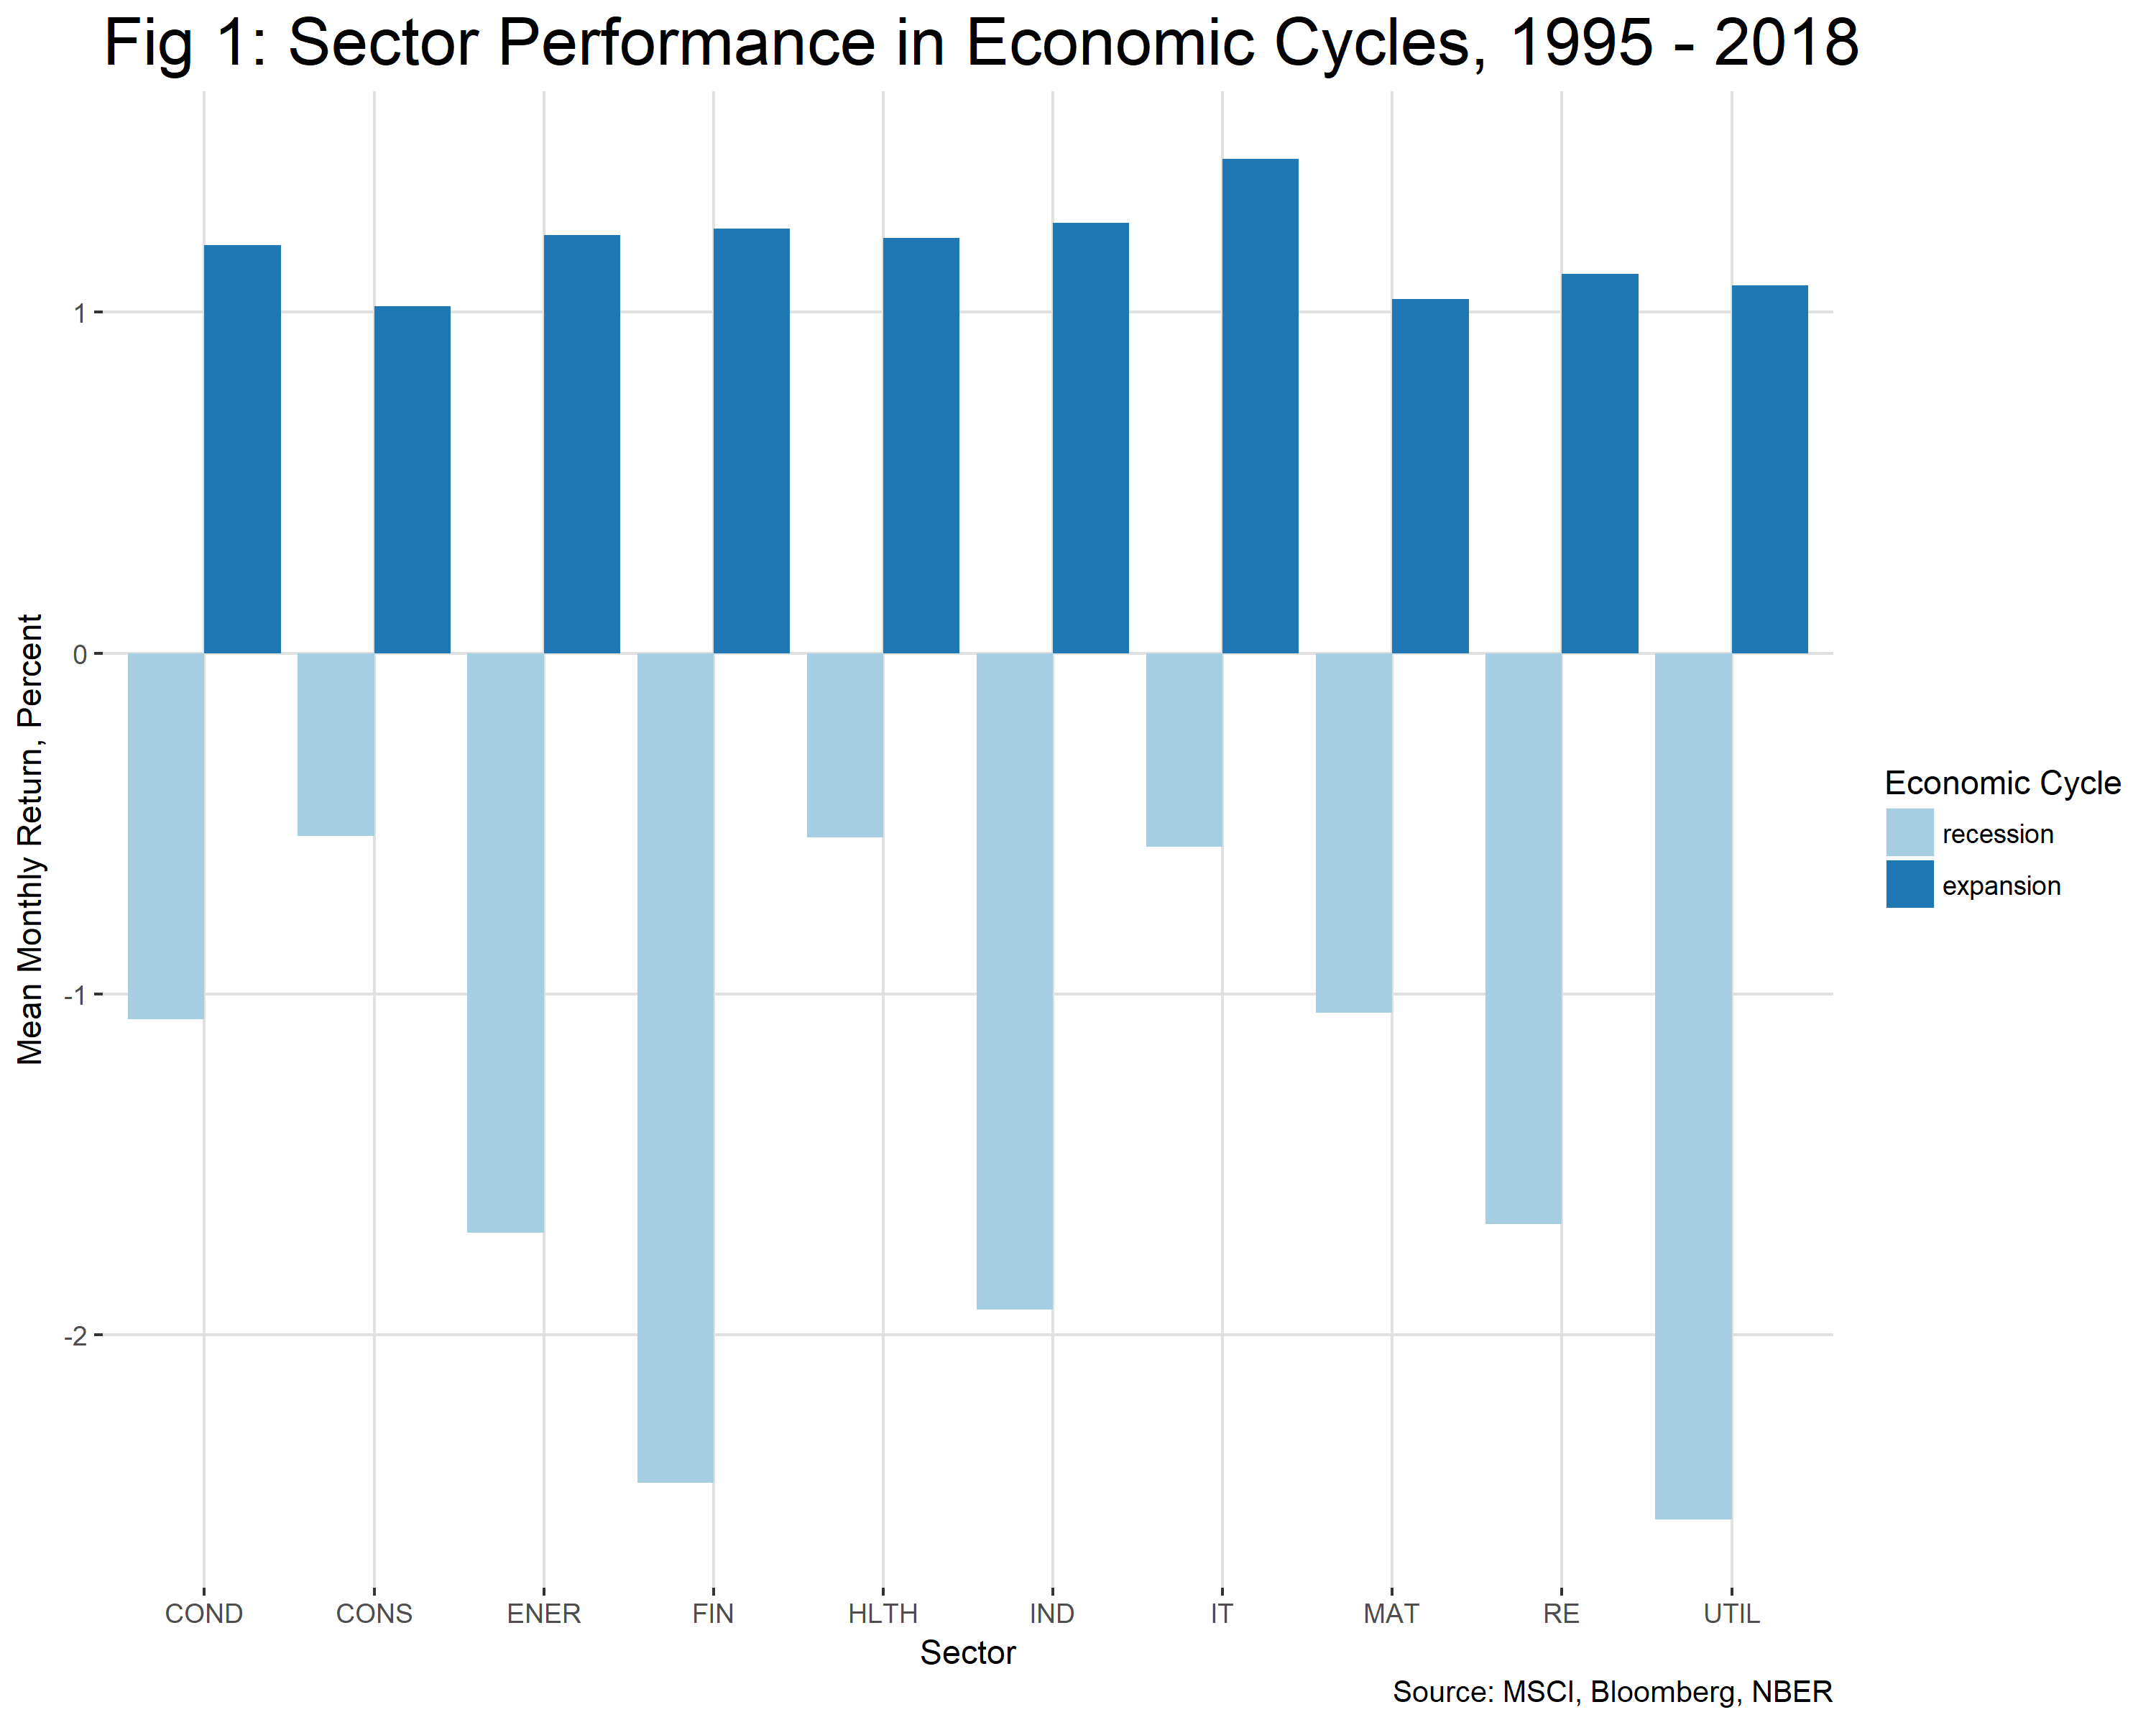 Sector Performance in Economic Cycles 1995-2018 chart